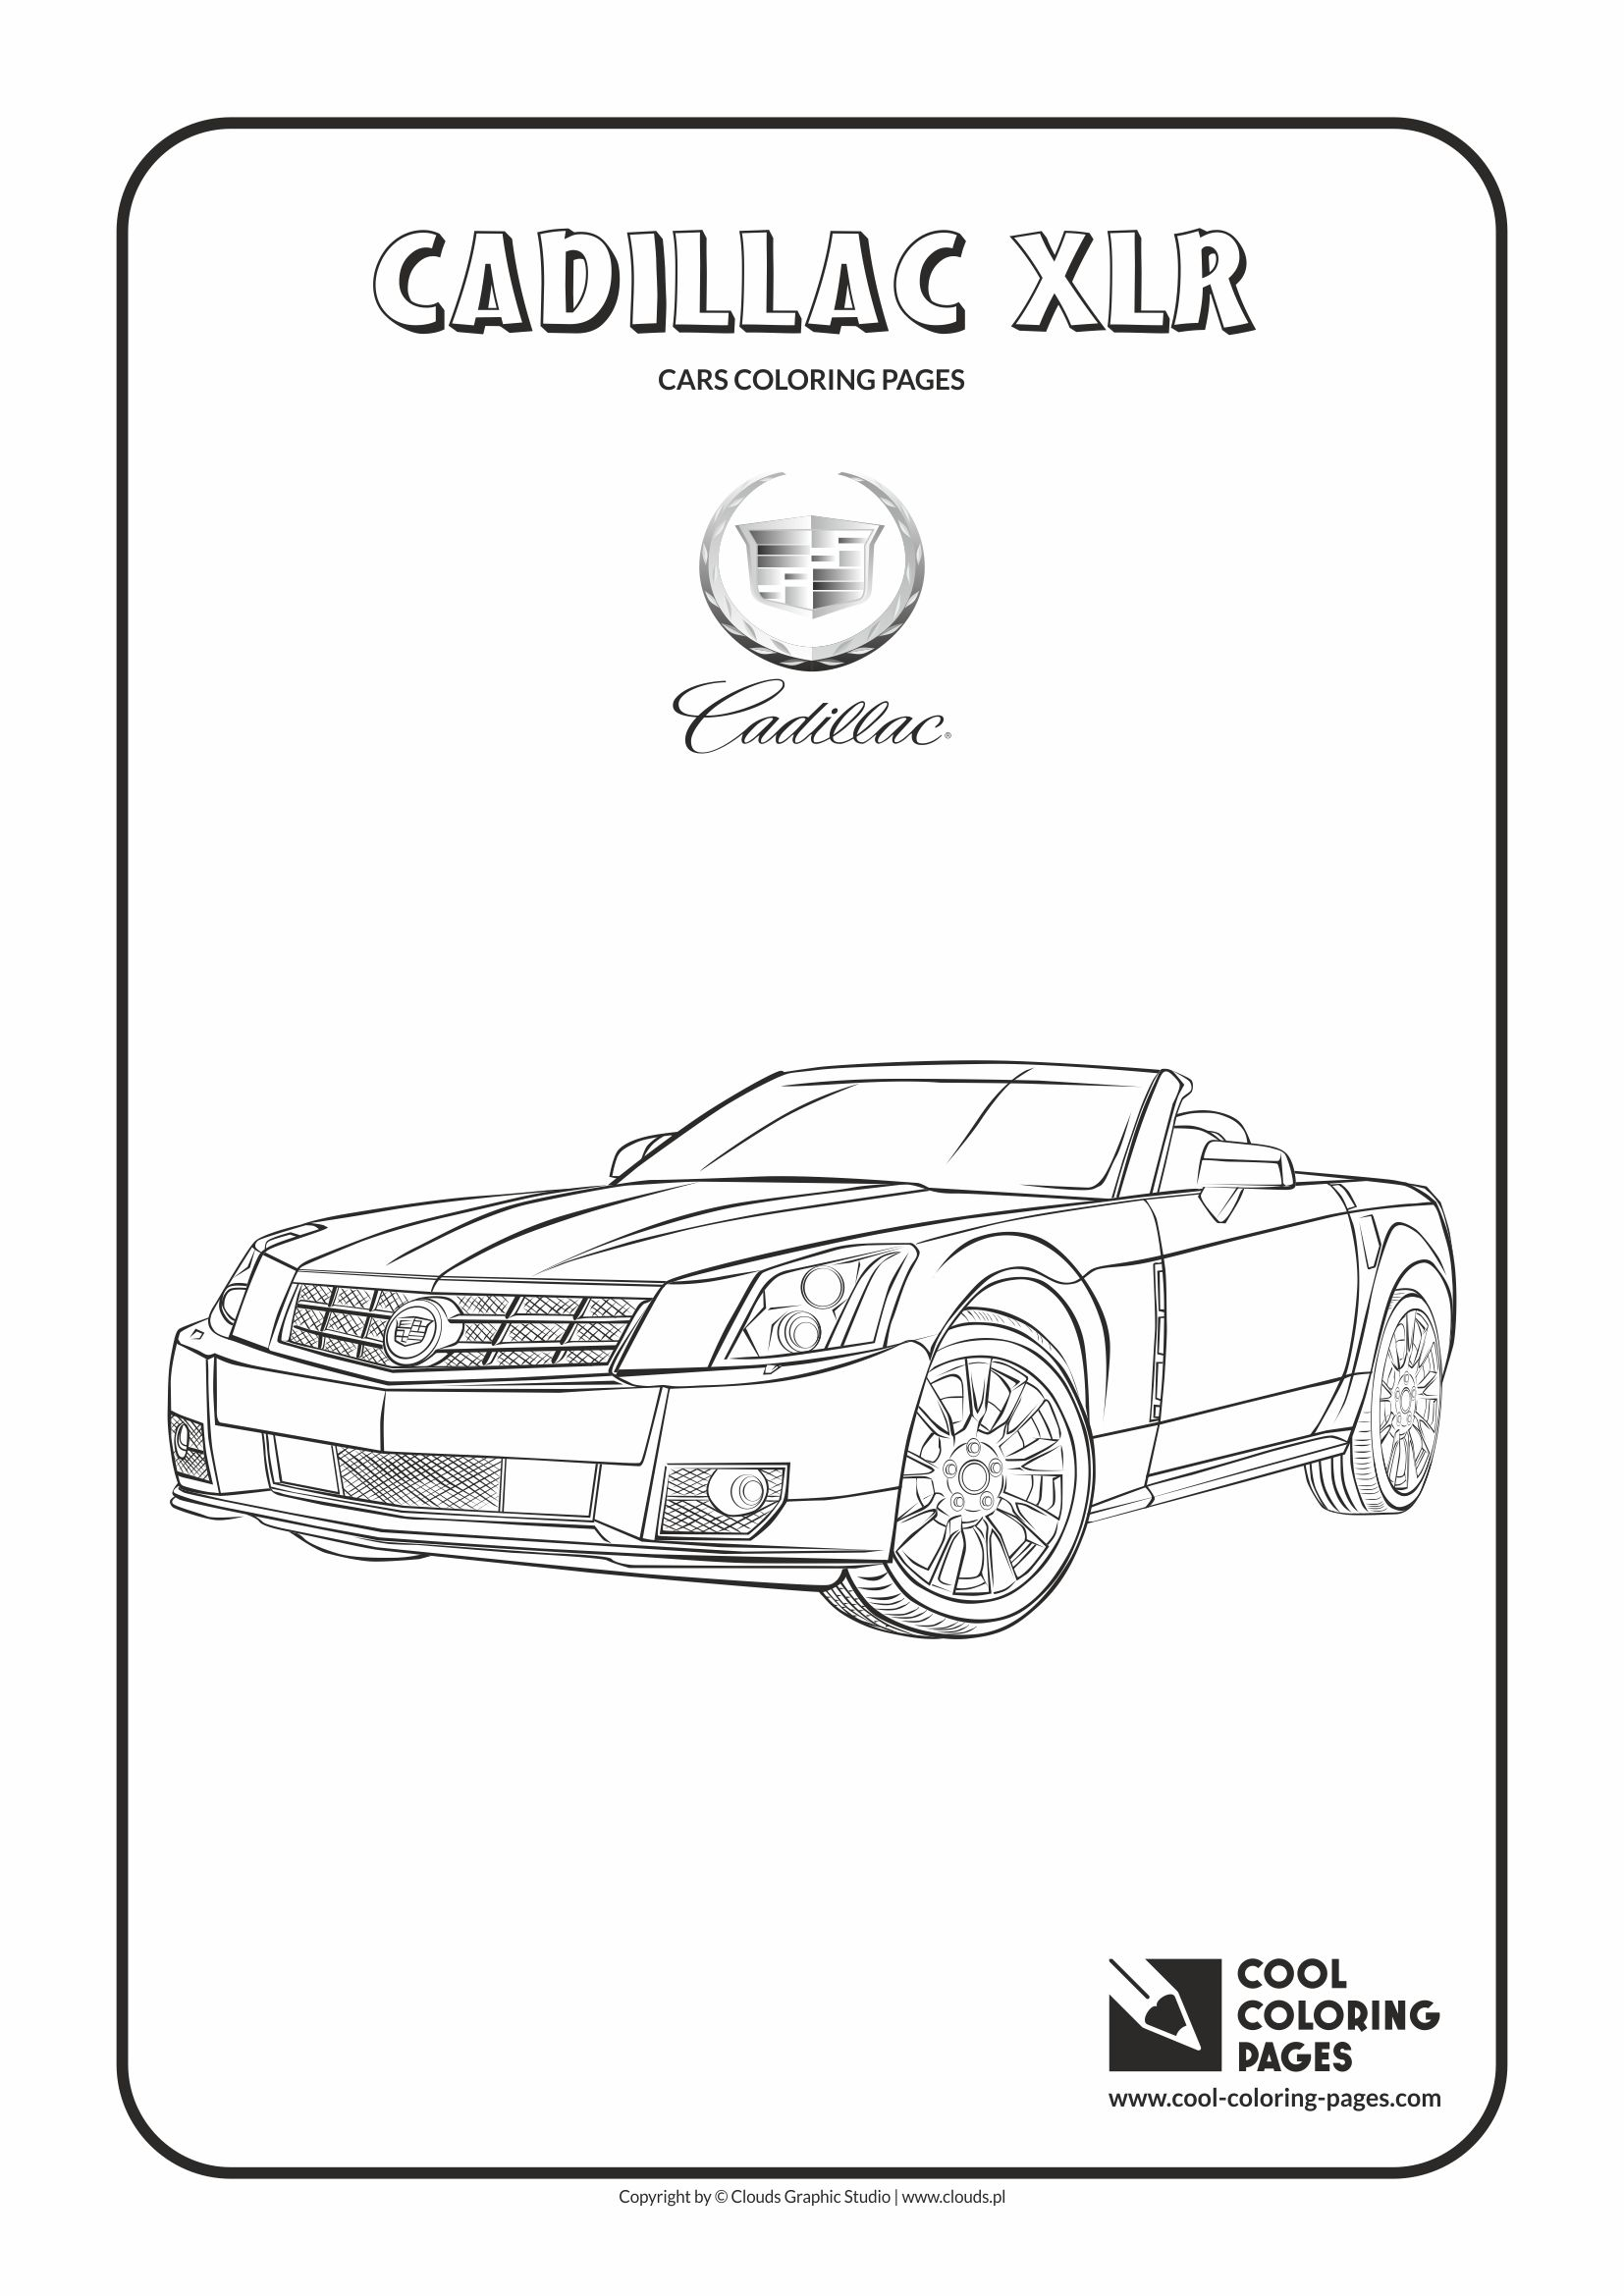 Cool Coloring Pages - Vehicles / Cadillac XLR / Coloring page with Cadillac XLR